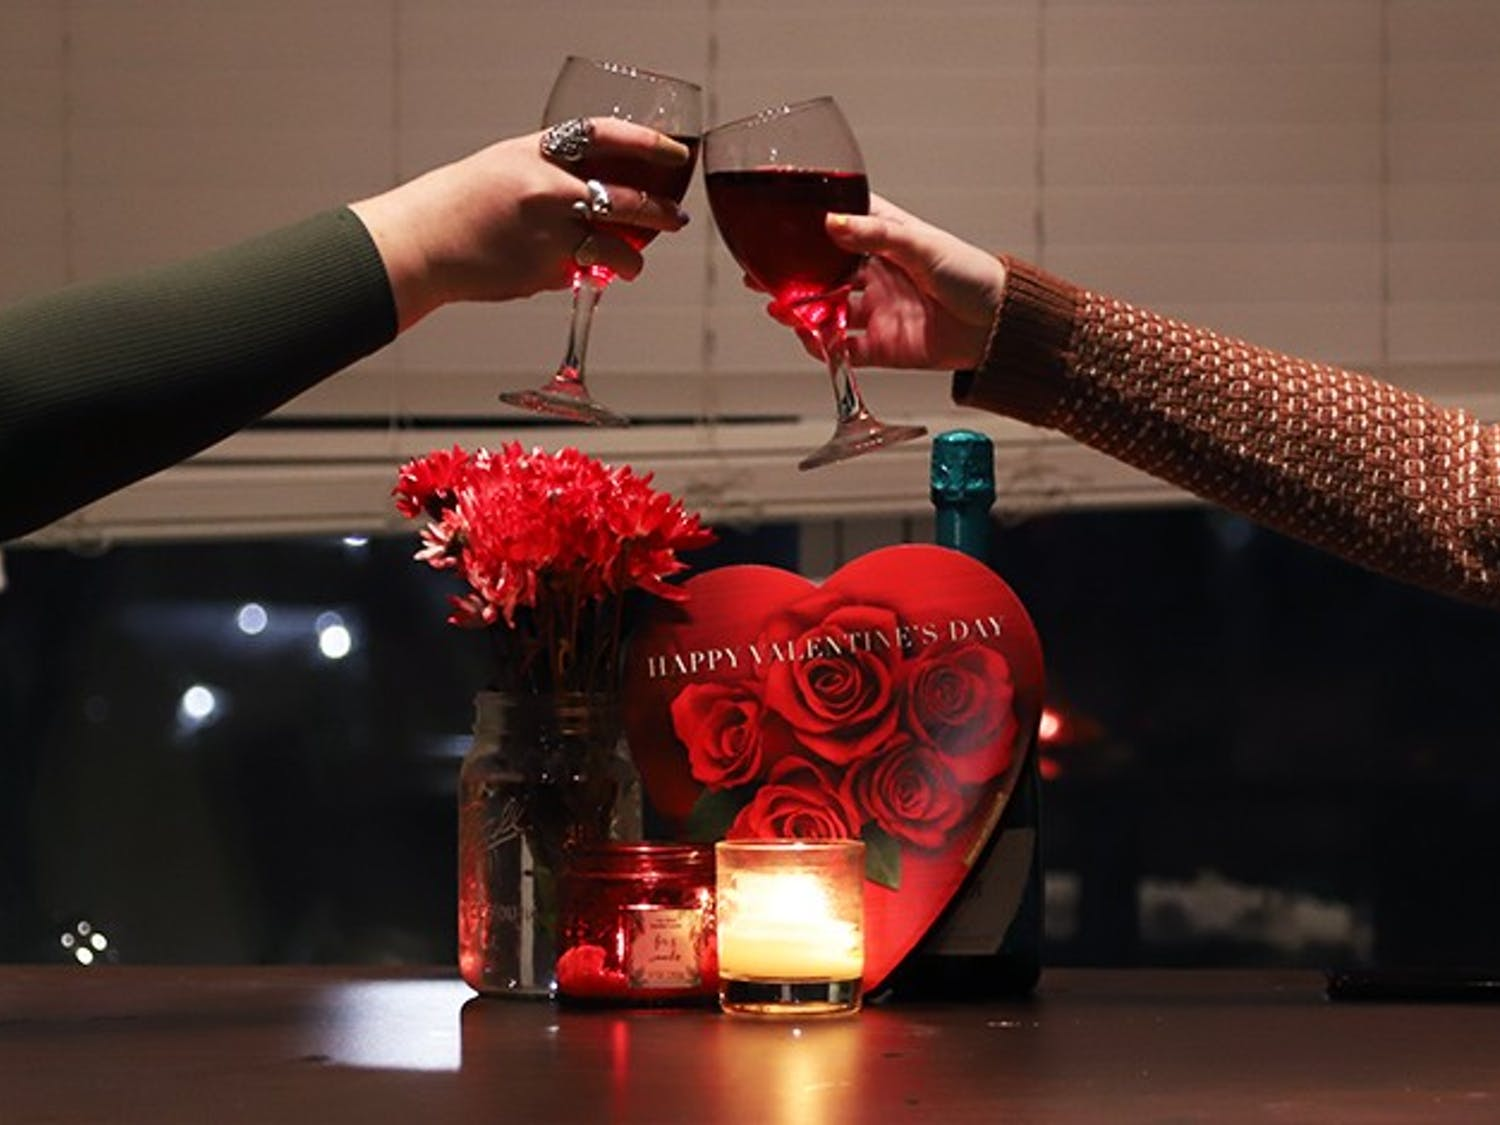 Two girls clink their glasses together with Valentine's Day paraphernalia behind them.